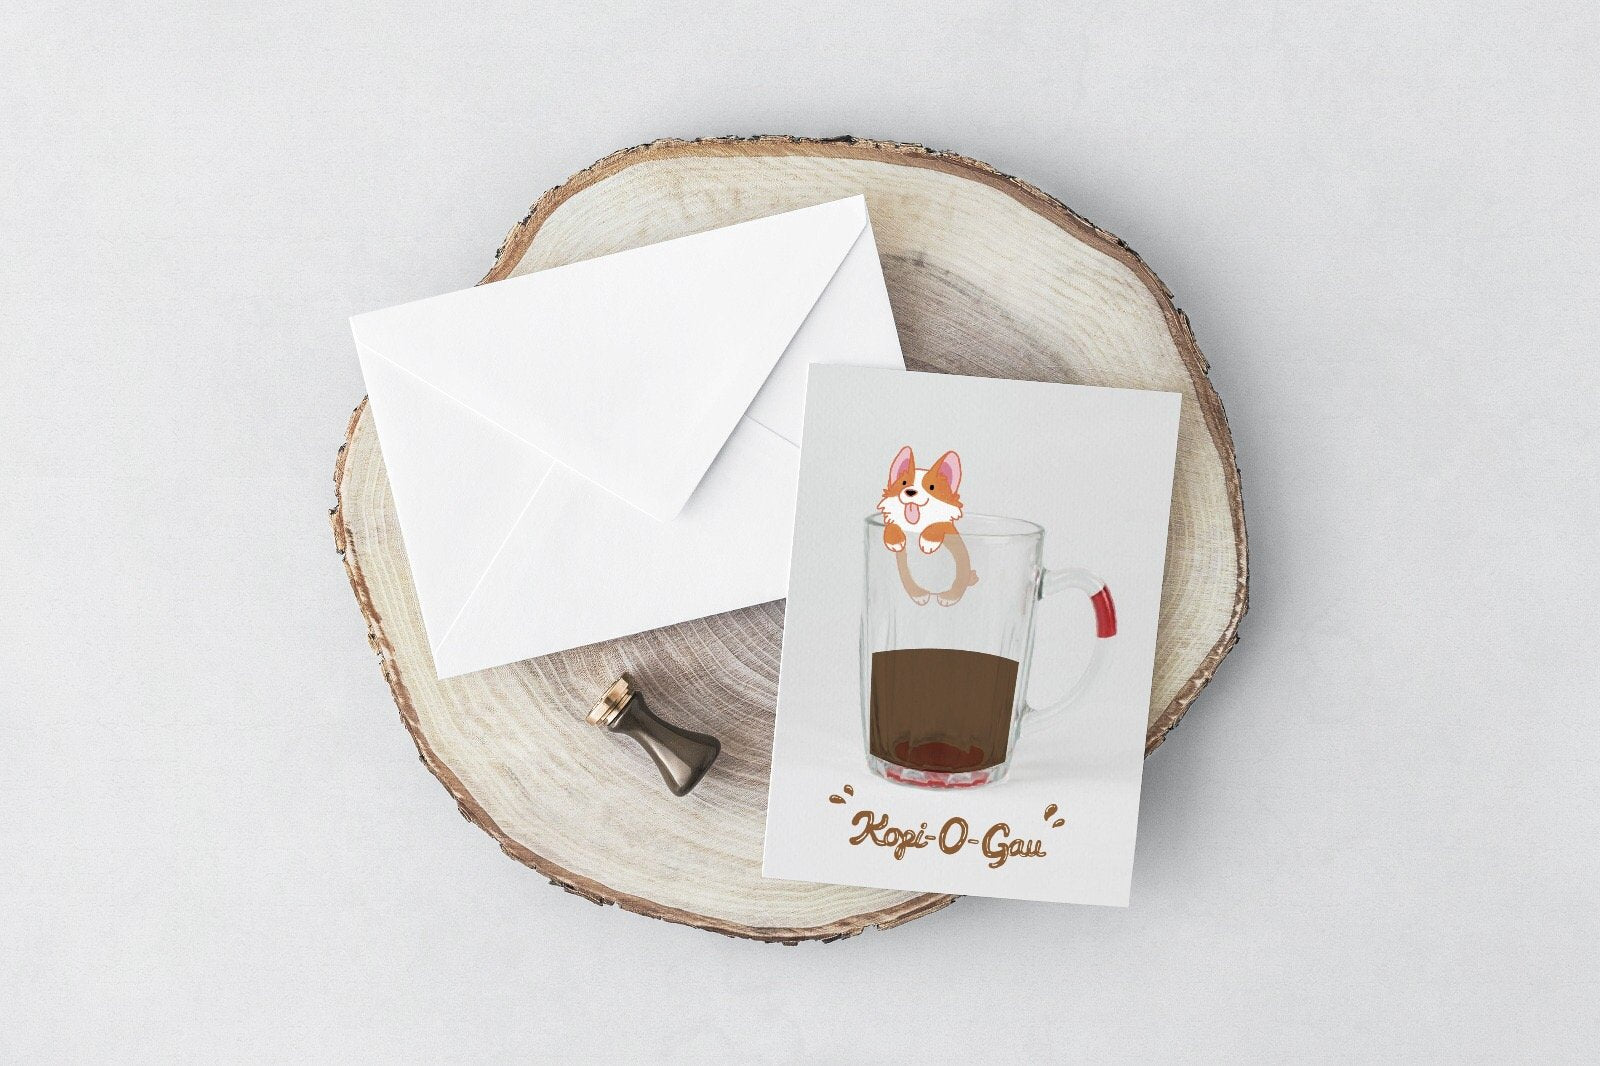 Kopi-o-gau Greeting Card